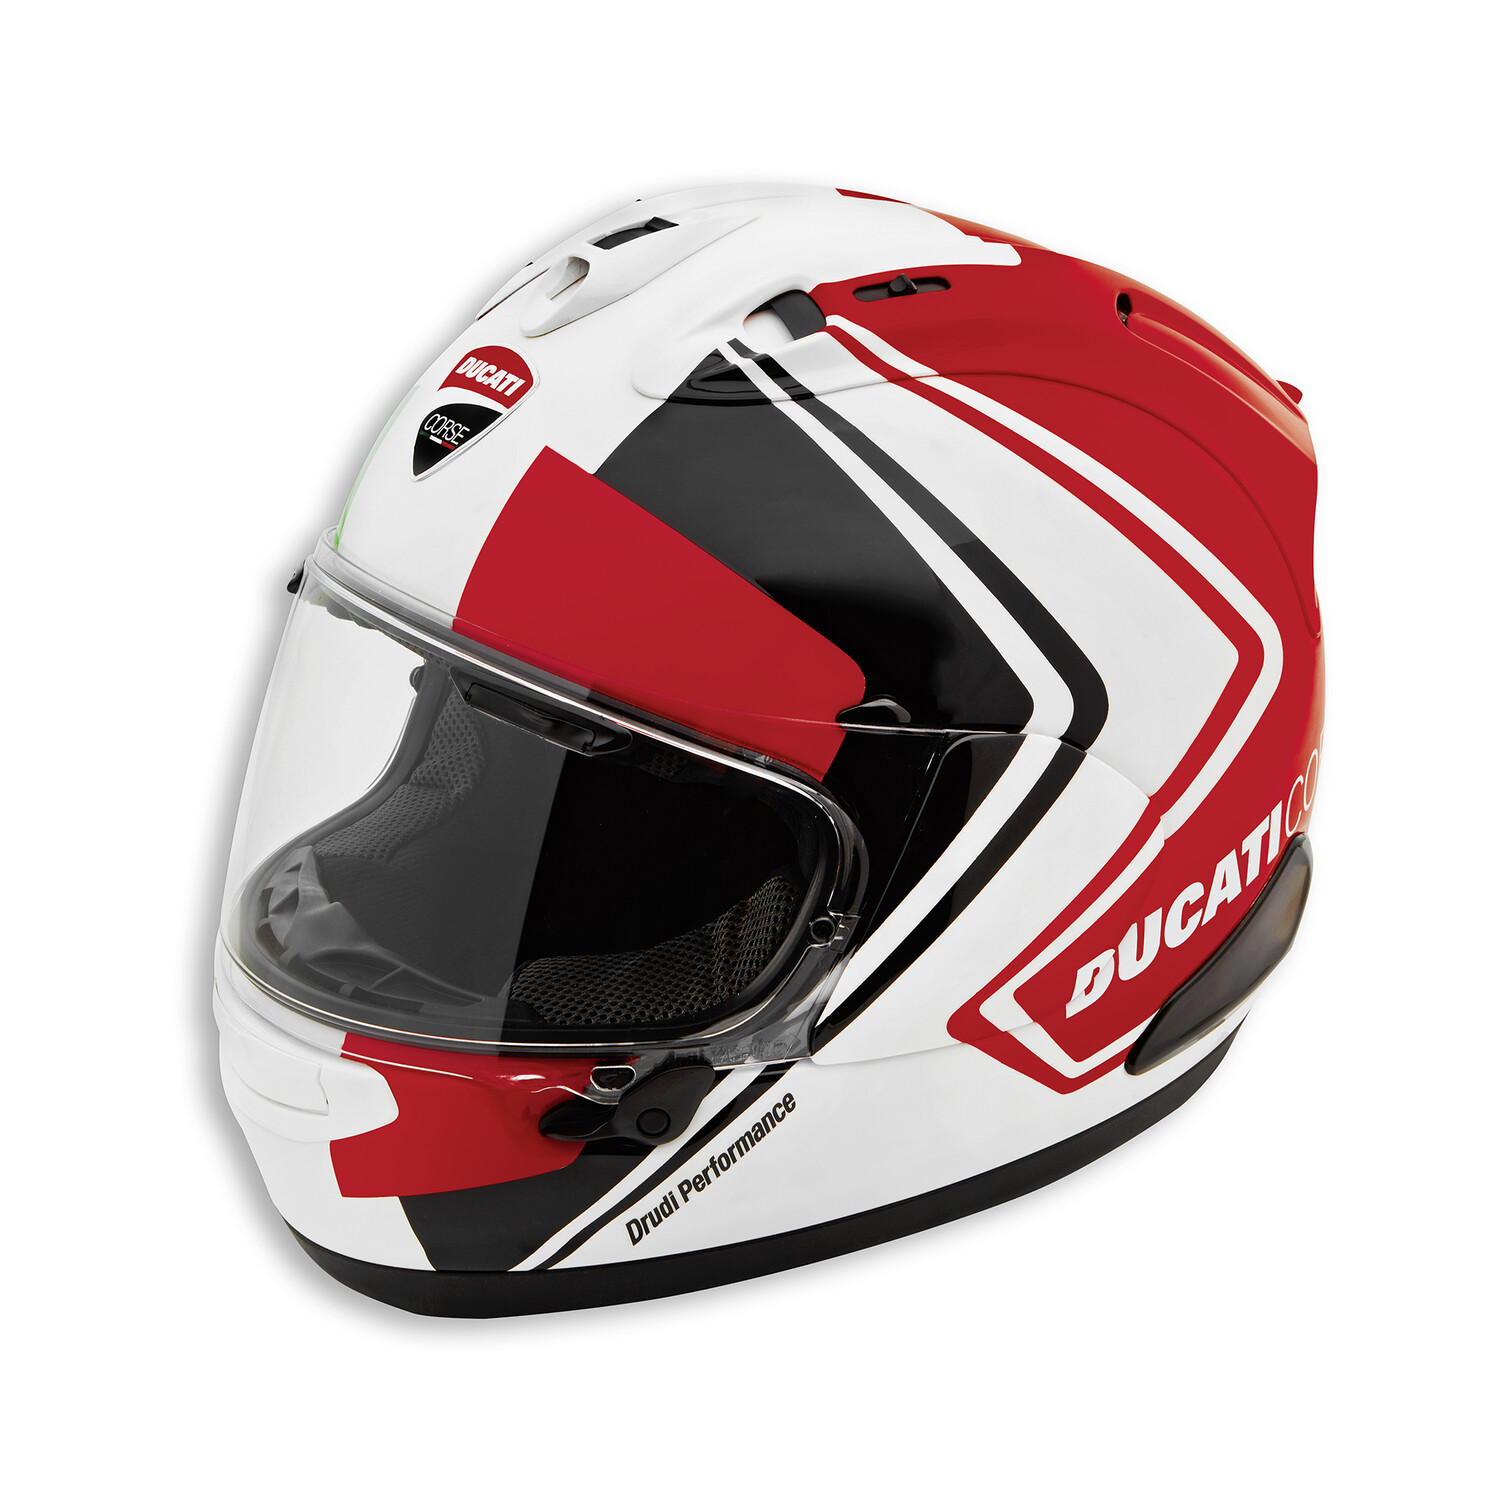 Ducati Corse Speed 2 - Full-face helmet